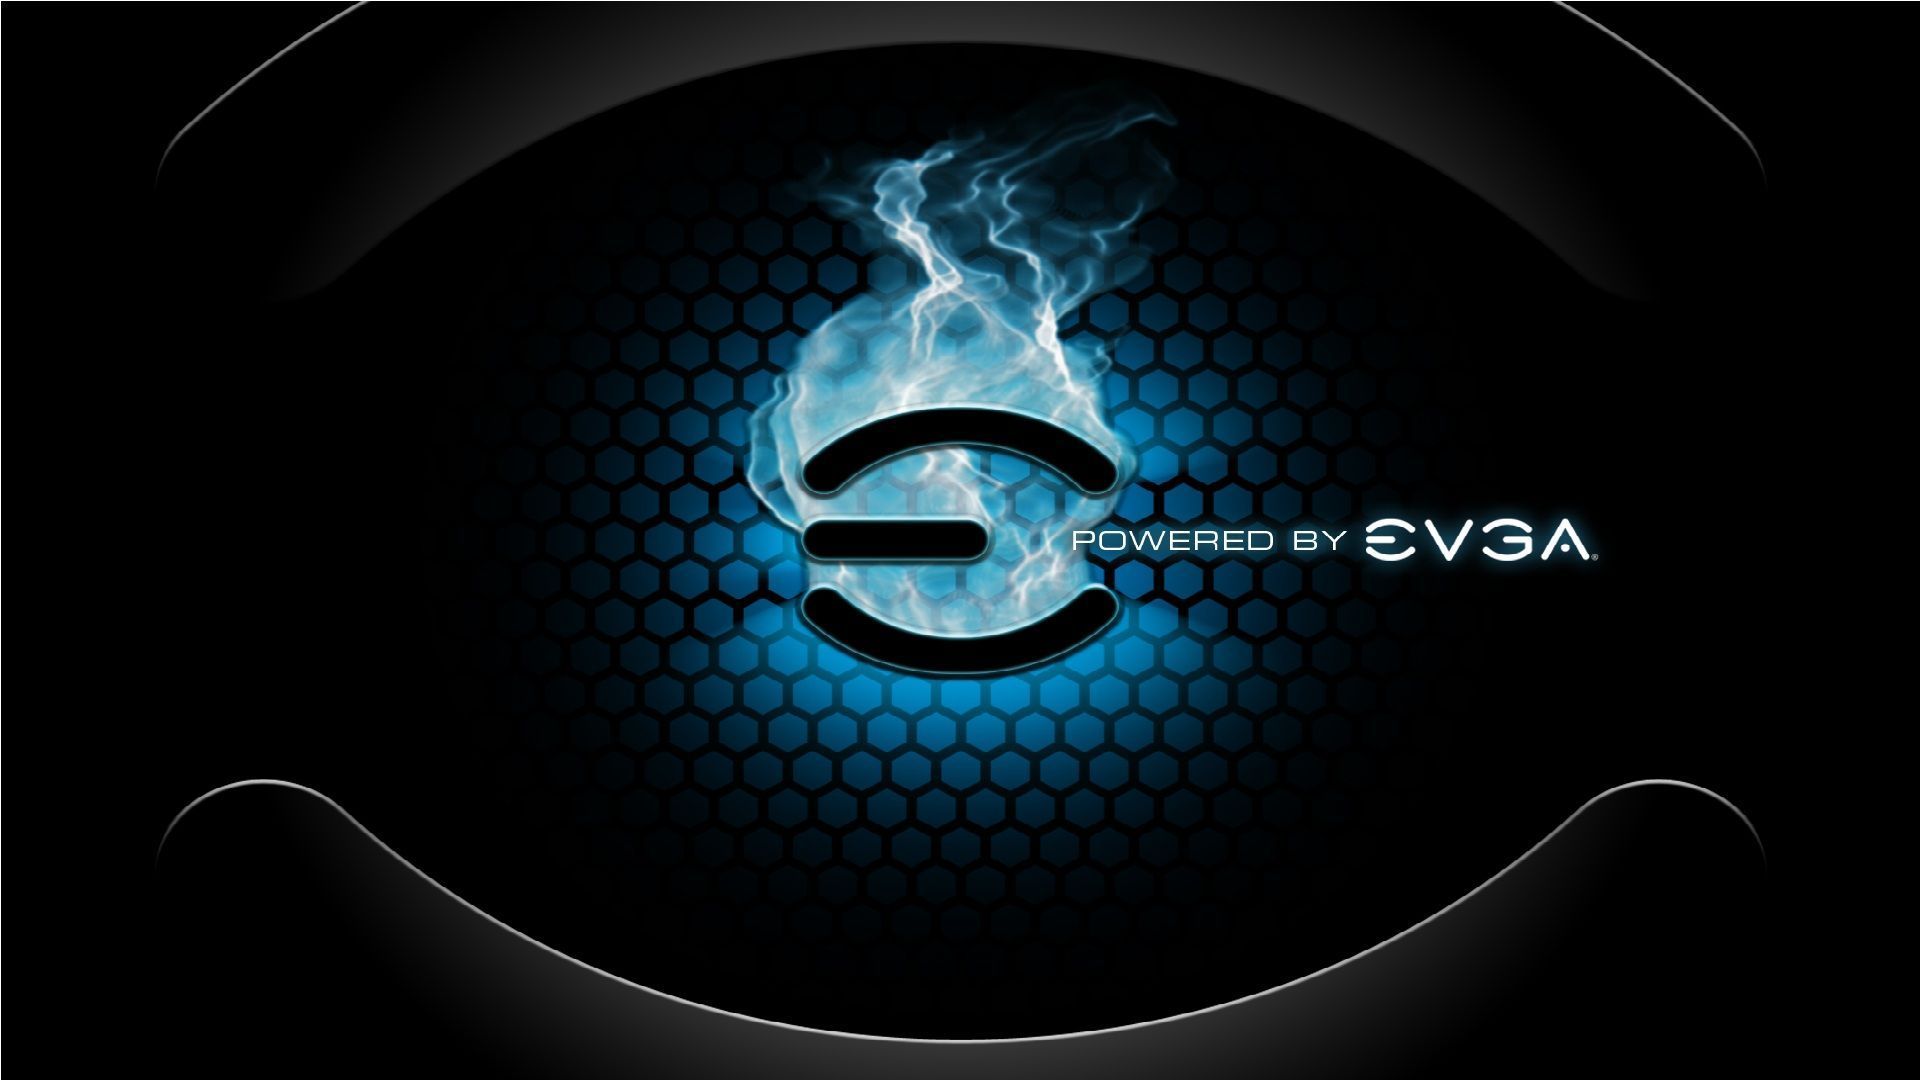 Evga Wallpapers - Wallpaper Cave